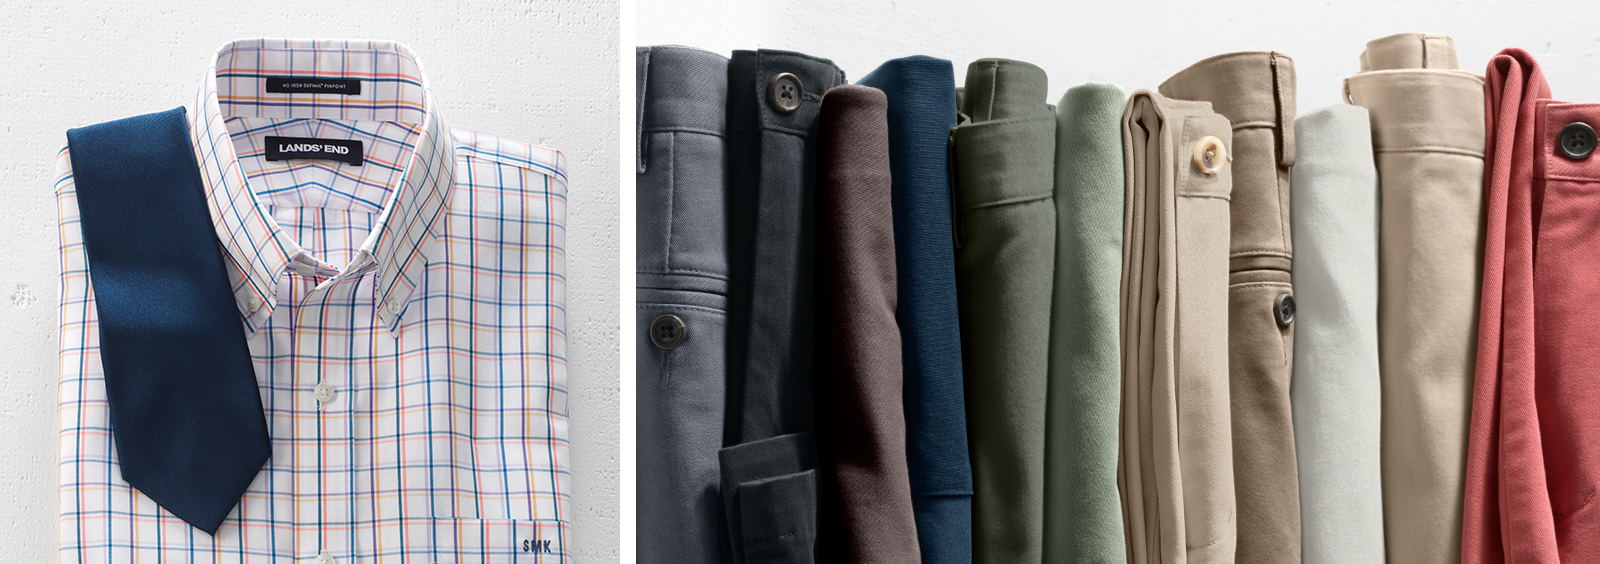 How to Pair Men's Dress Shirts with Pants